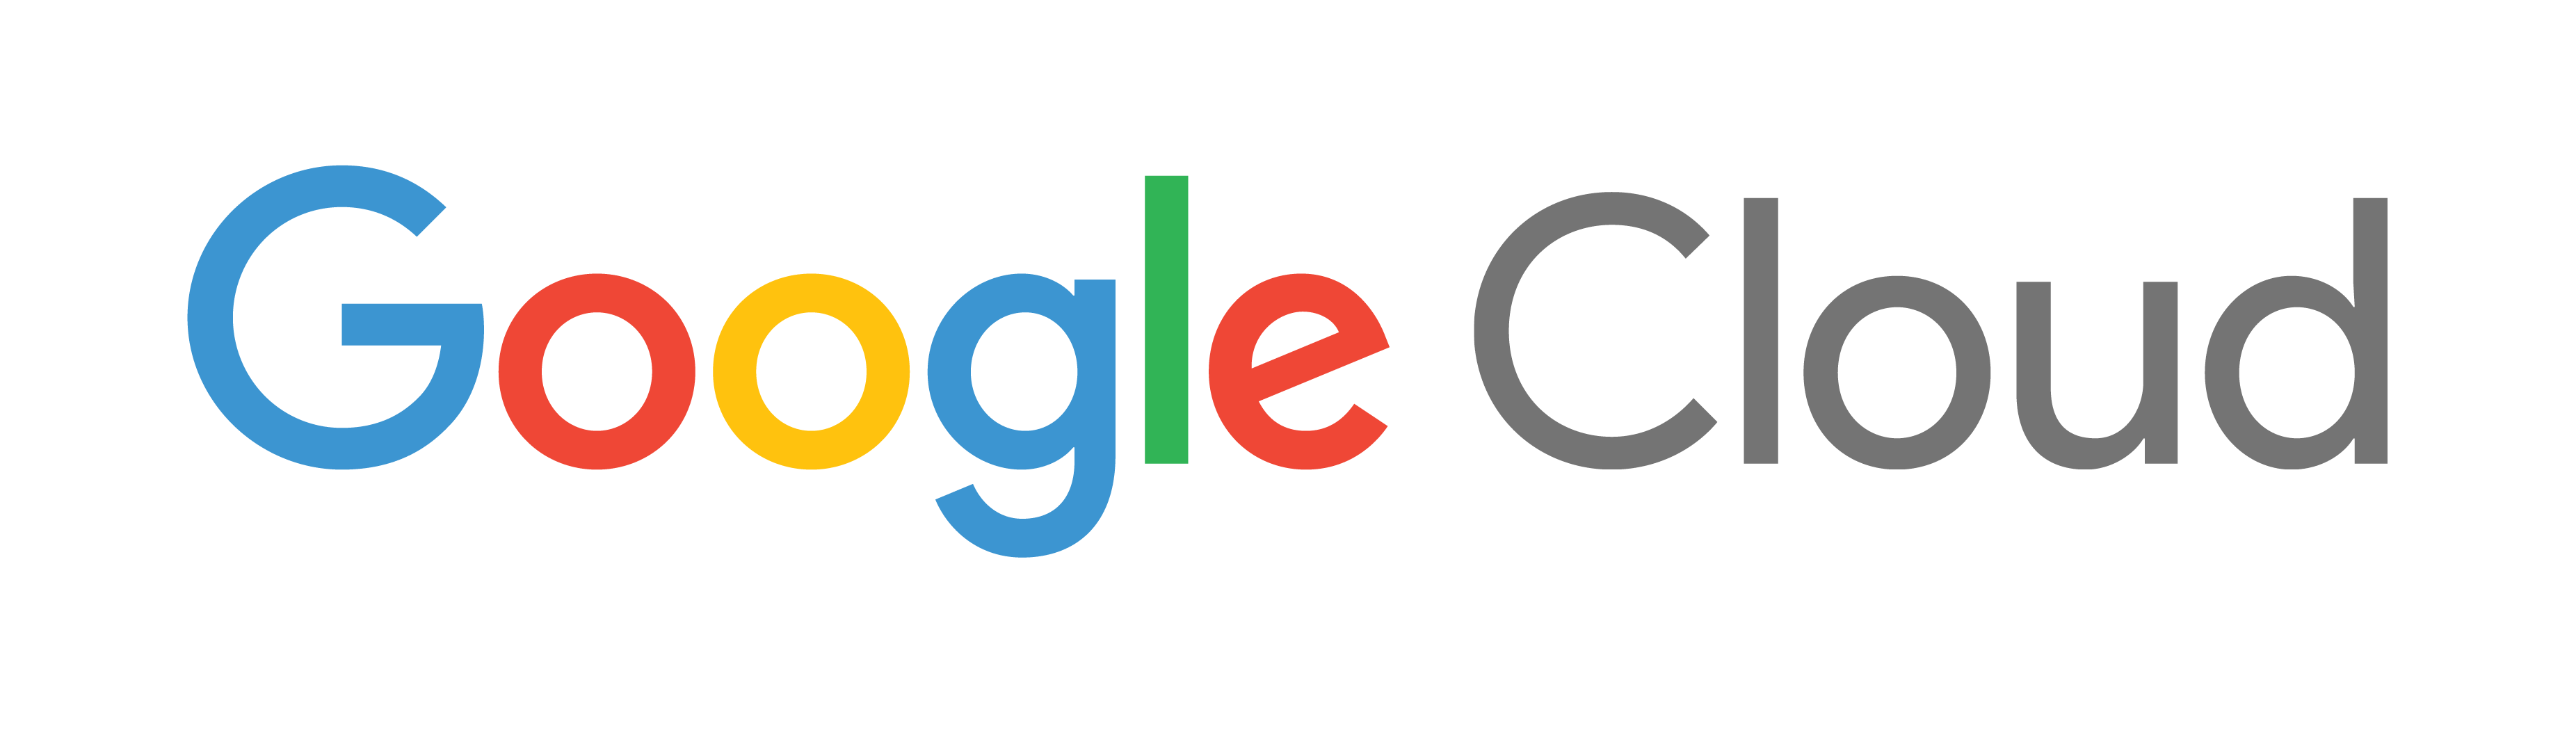 Google For Work logo png eSource Capital